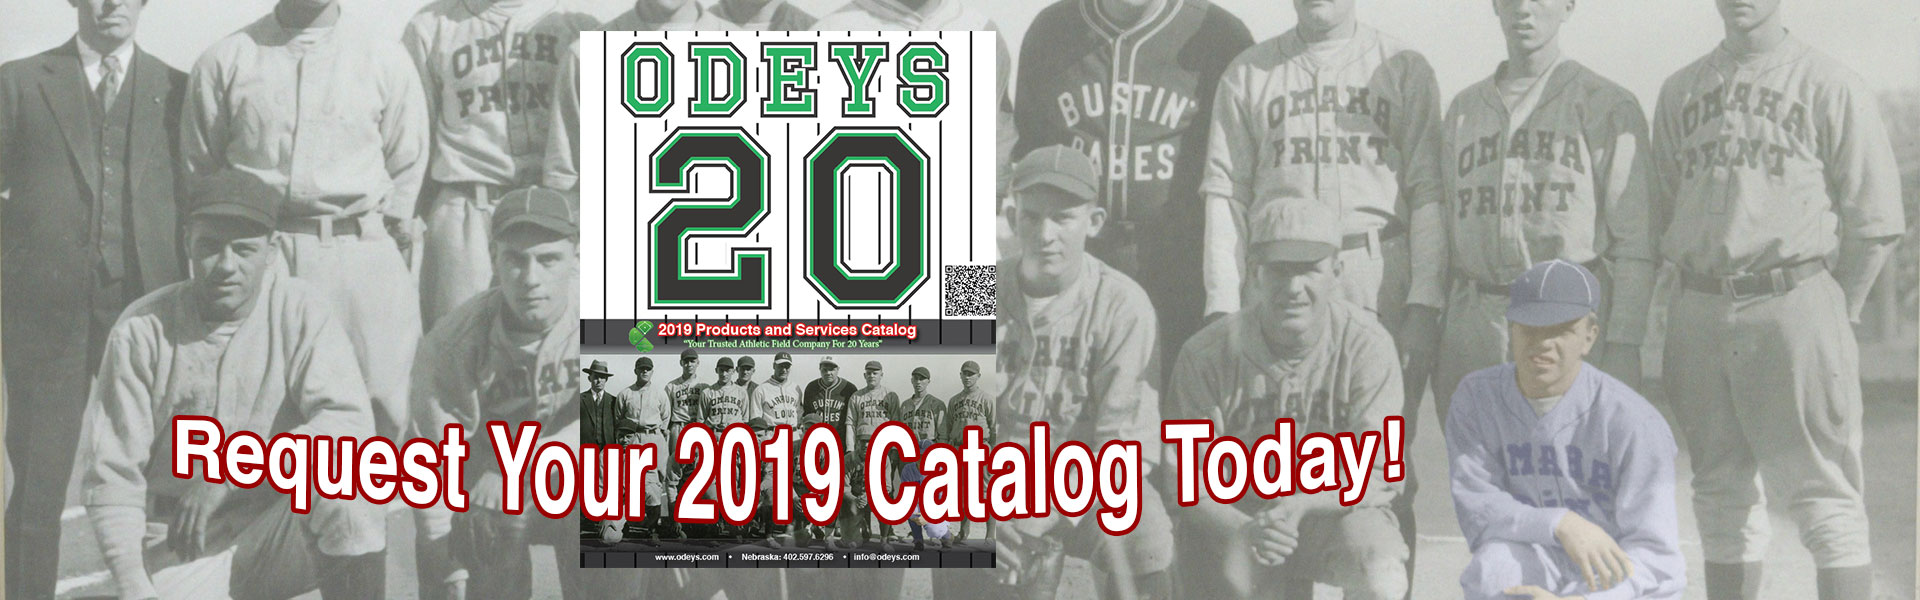 Request 2019 Odeys Catalog